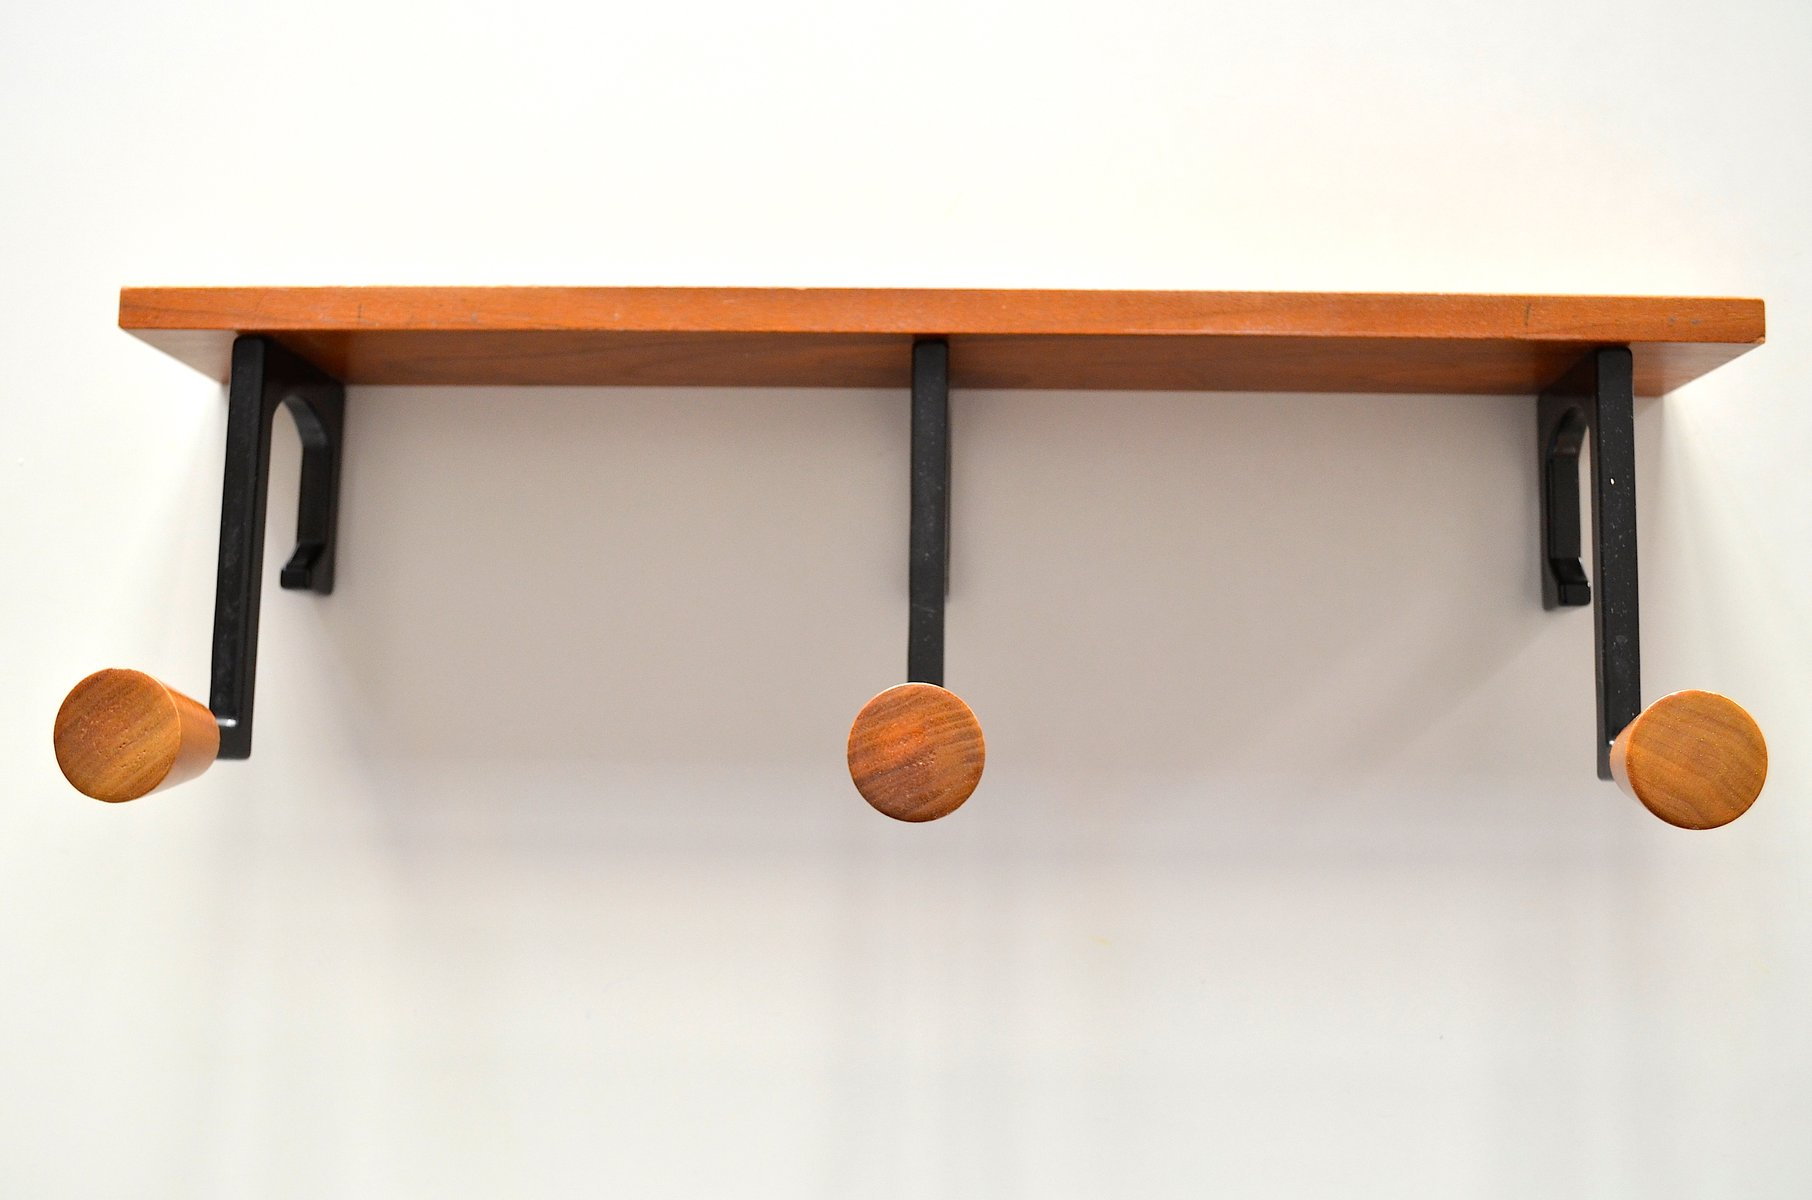 pin with on cheap well living entryway shelf the it hooks